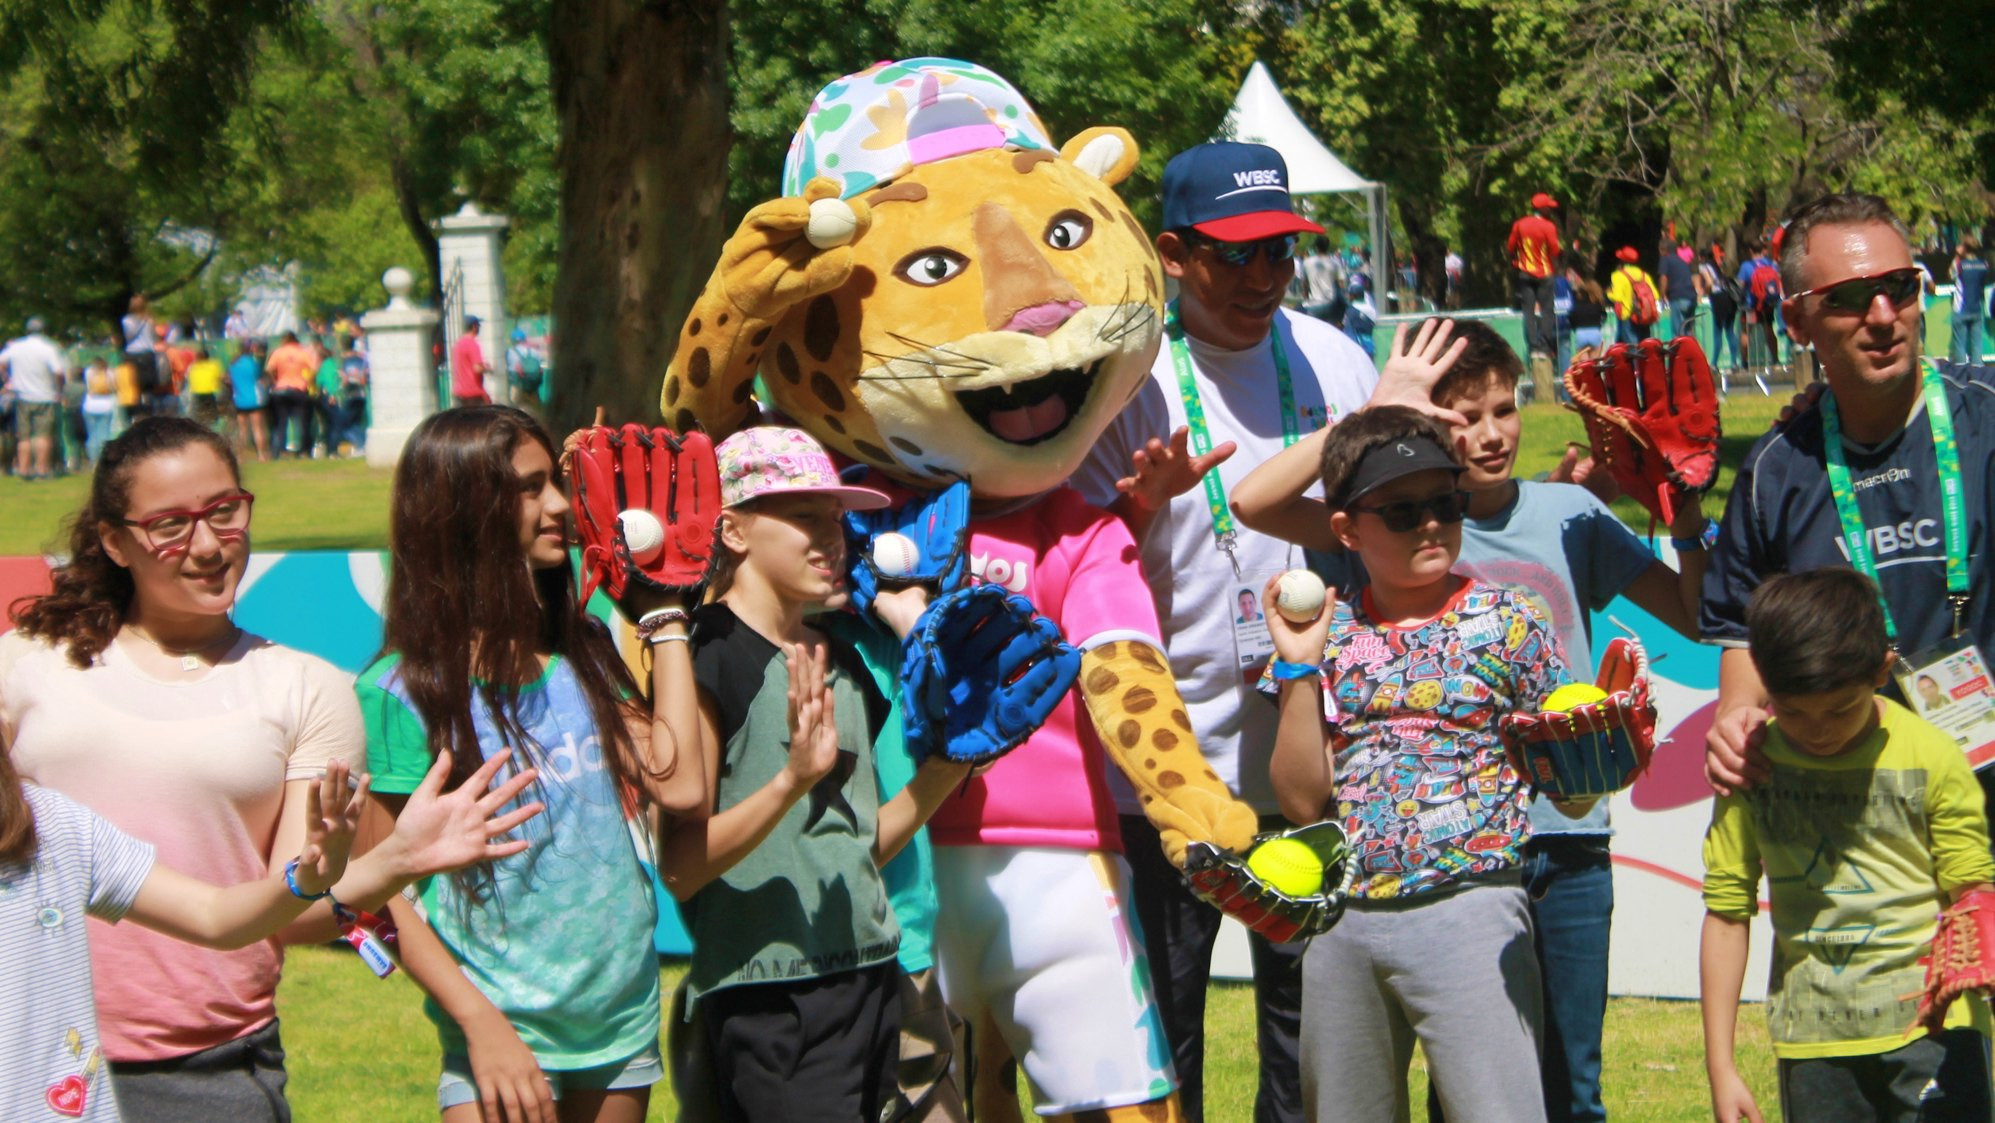 Baseball5 featured in the sports initiation zone at the Buenos Aires 2018 Summer Youth Olympic Games ©WBSC